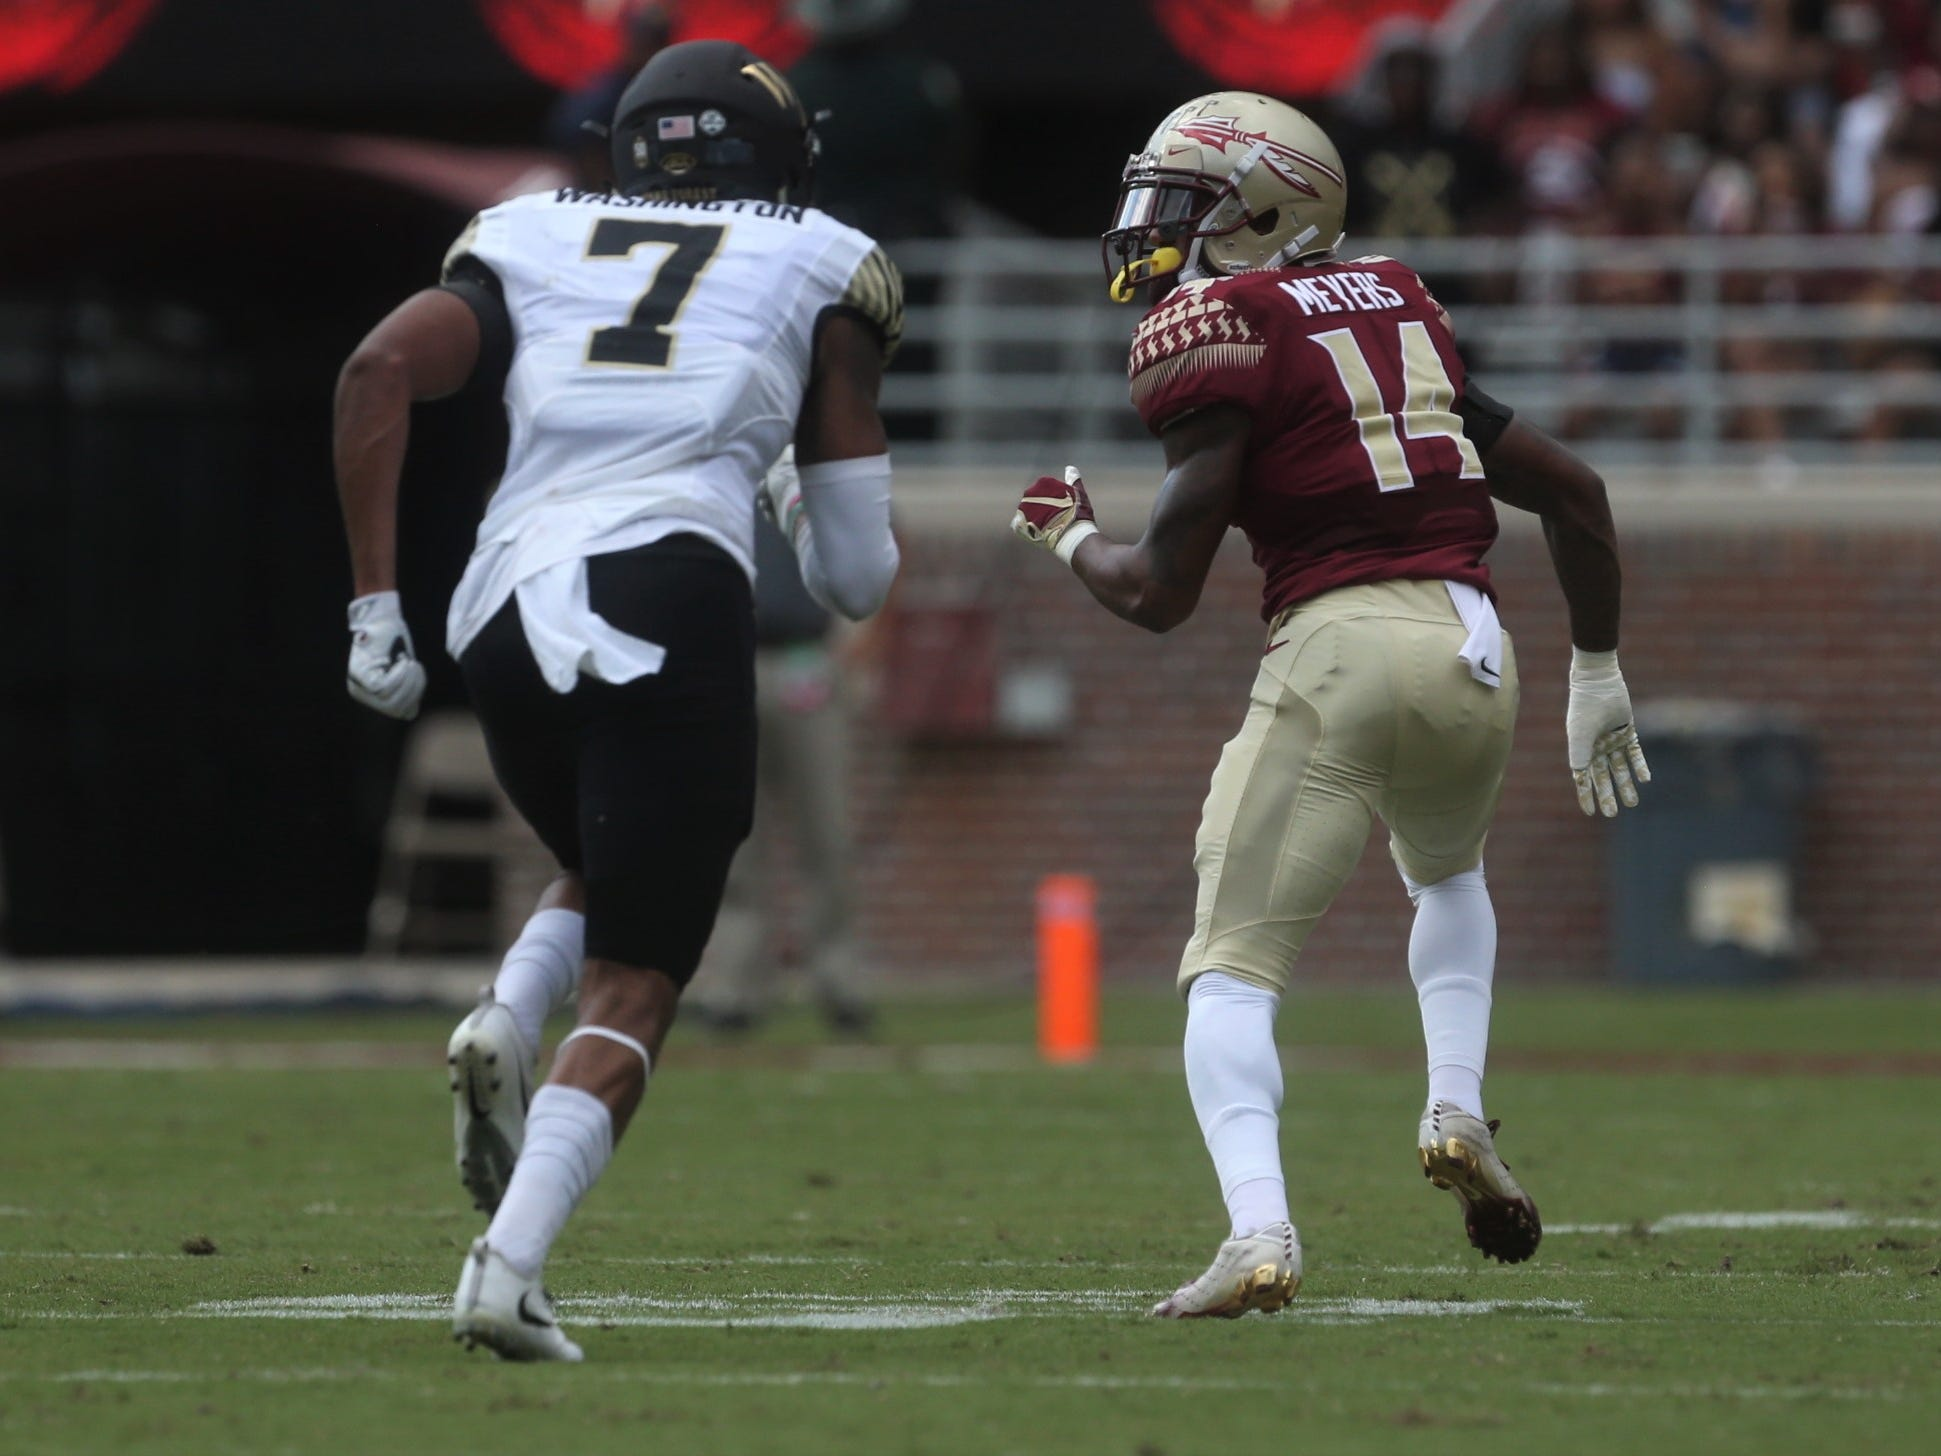 Florida State defensive back Kyle Meyers runs back in coverage of Wake Forest receiver Scott Washington during a game at Doak Campbell Stadium on Saturday, Oct. 20, 2018.